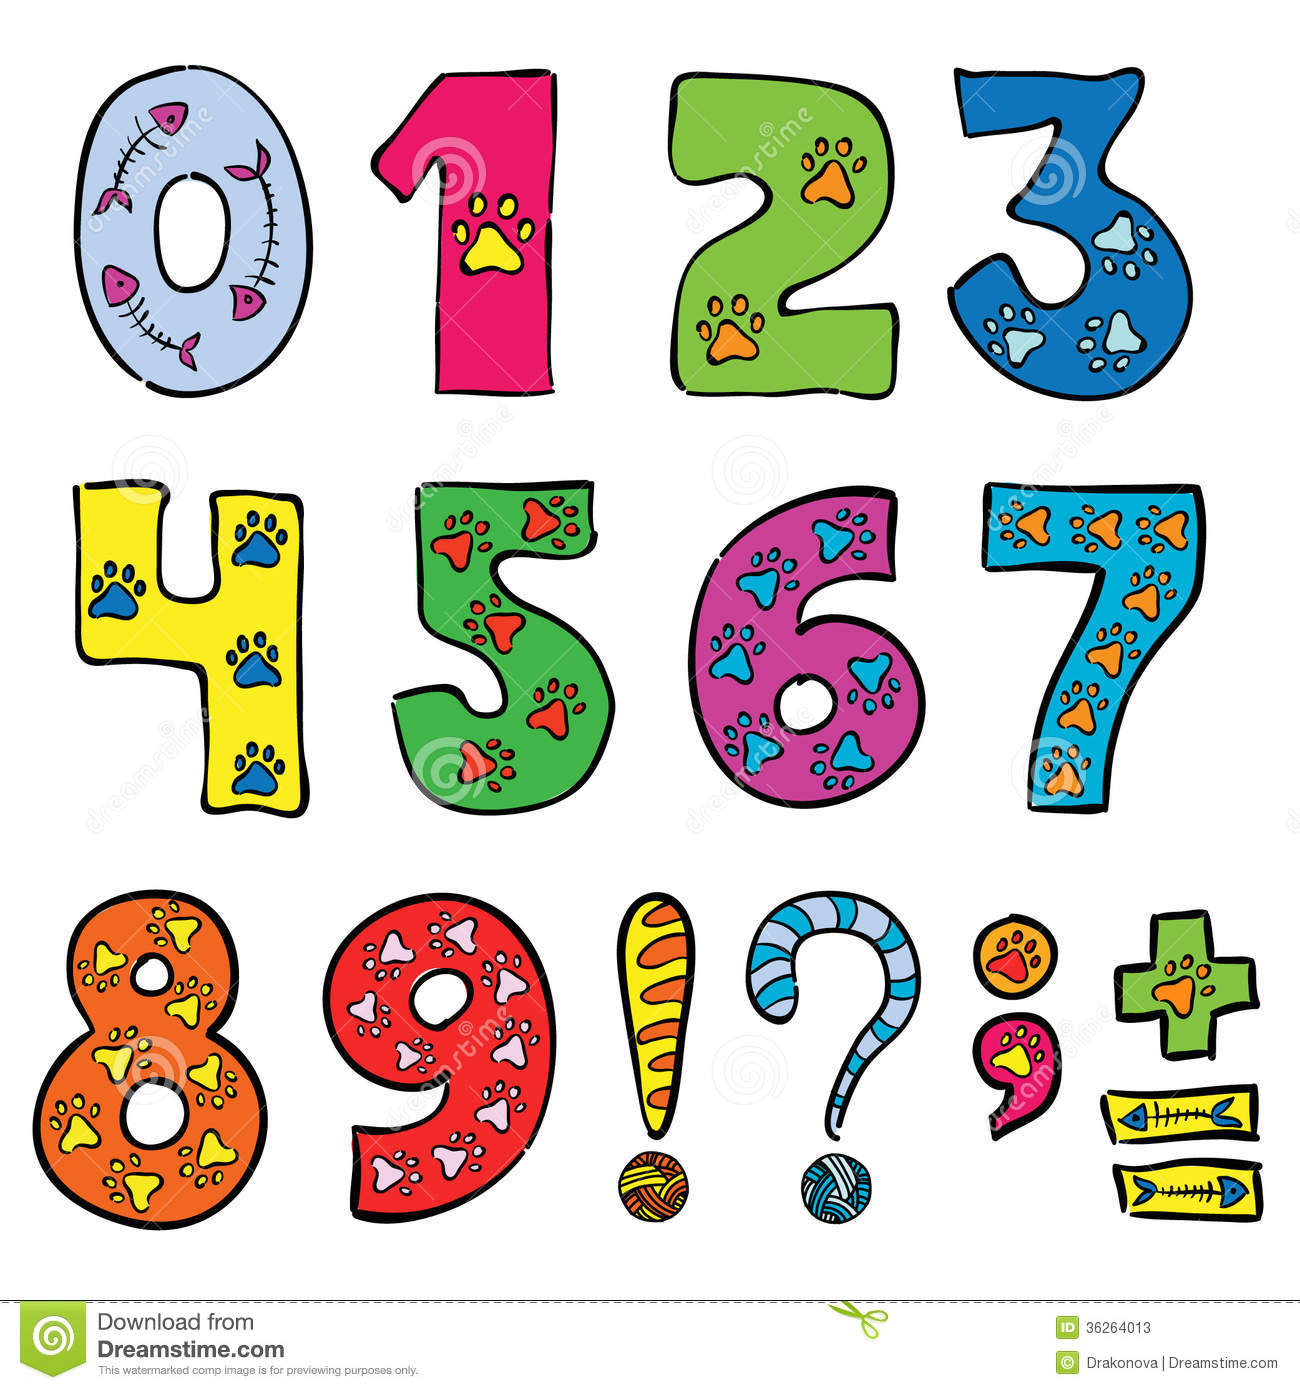 Numbers and signs stock photos image 36264013 for Blueprint number